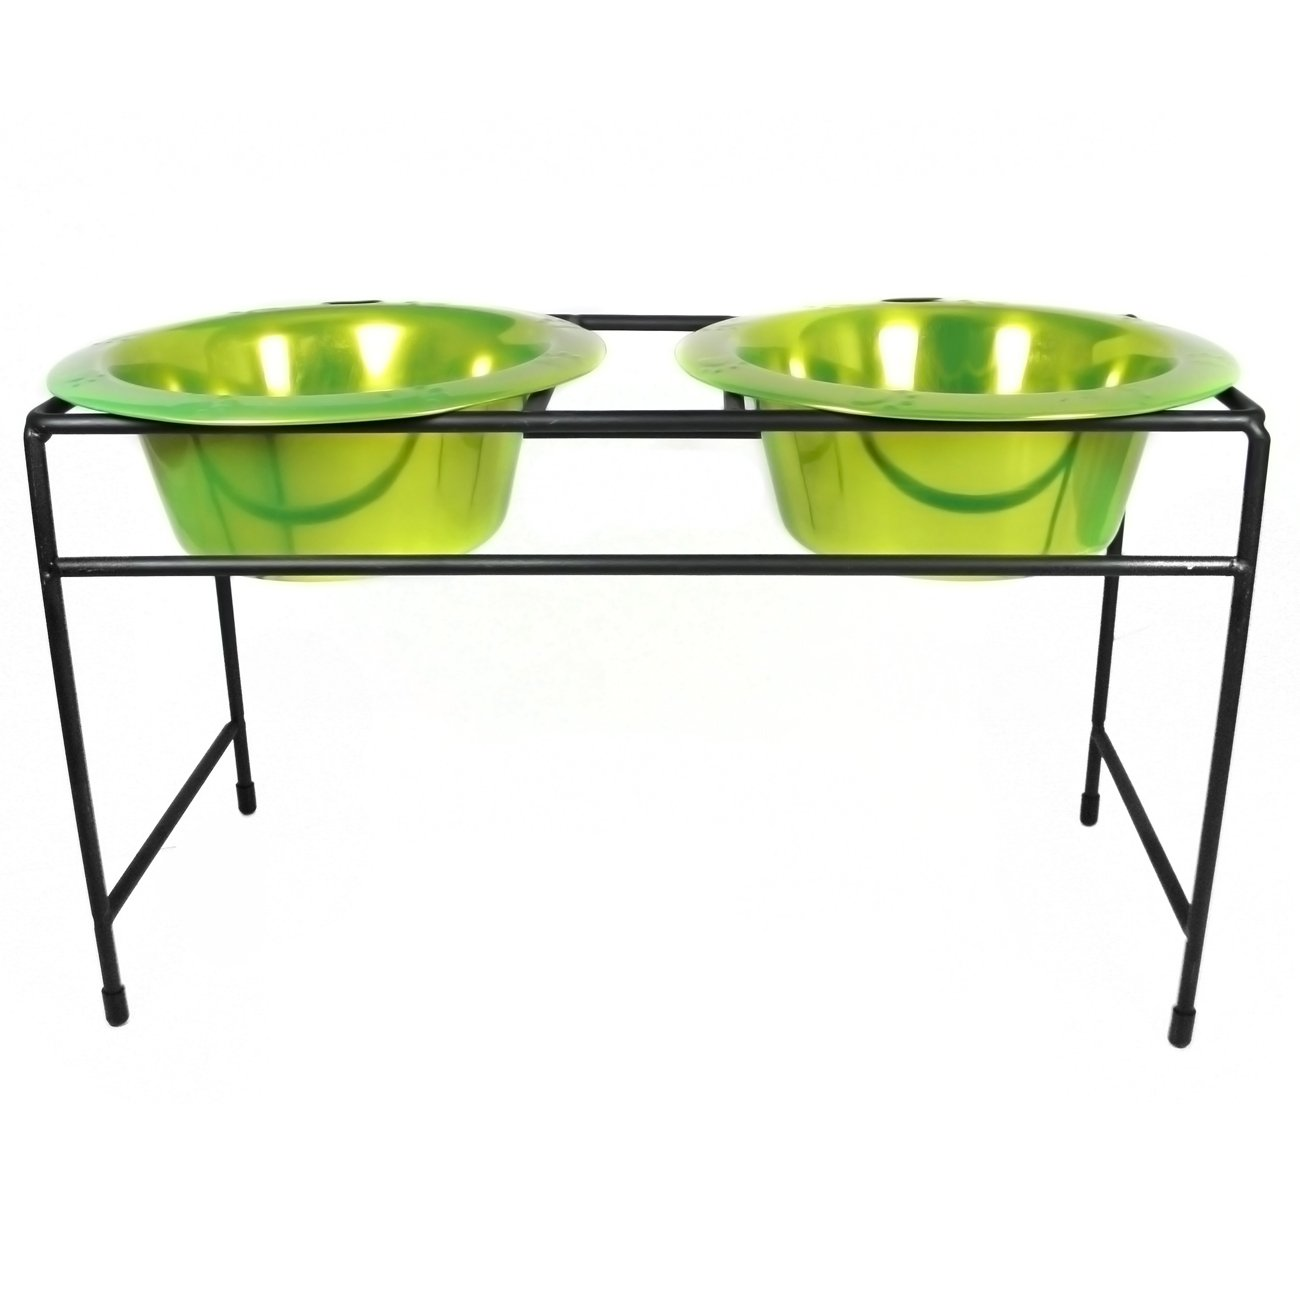 Platinum Pets Double Diner Feeder with Stainless Steel Dog Bowls, 28 oz, Lime